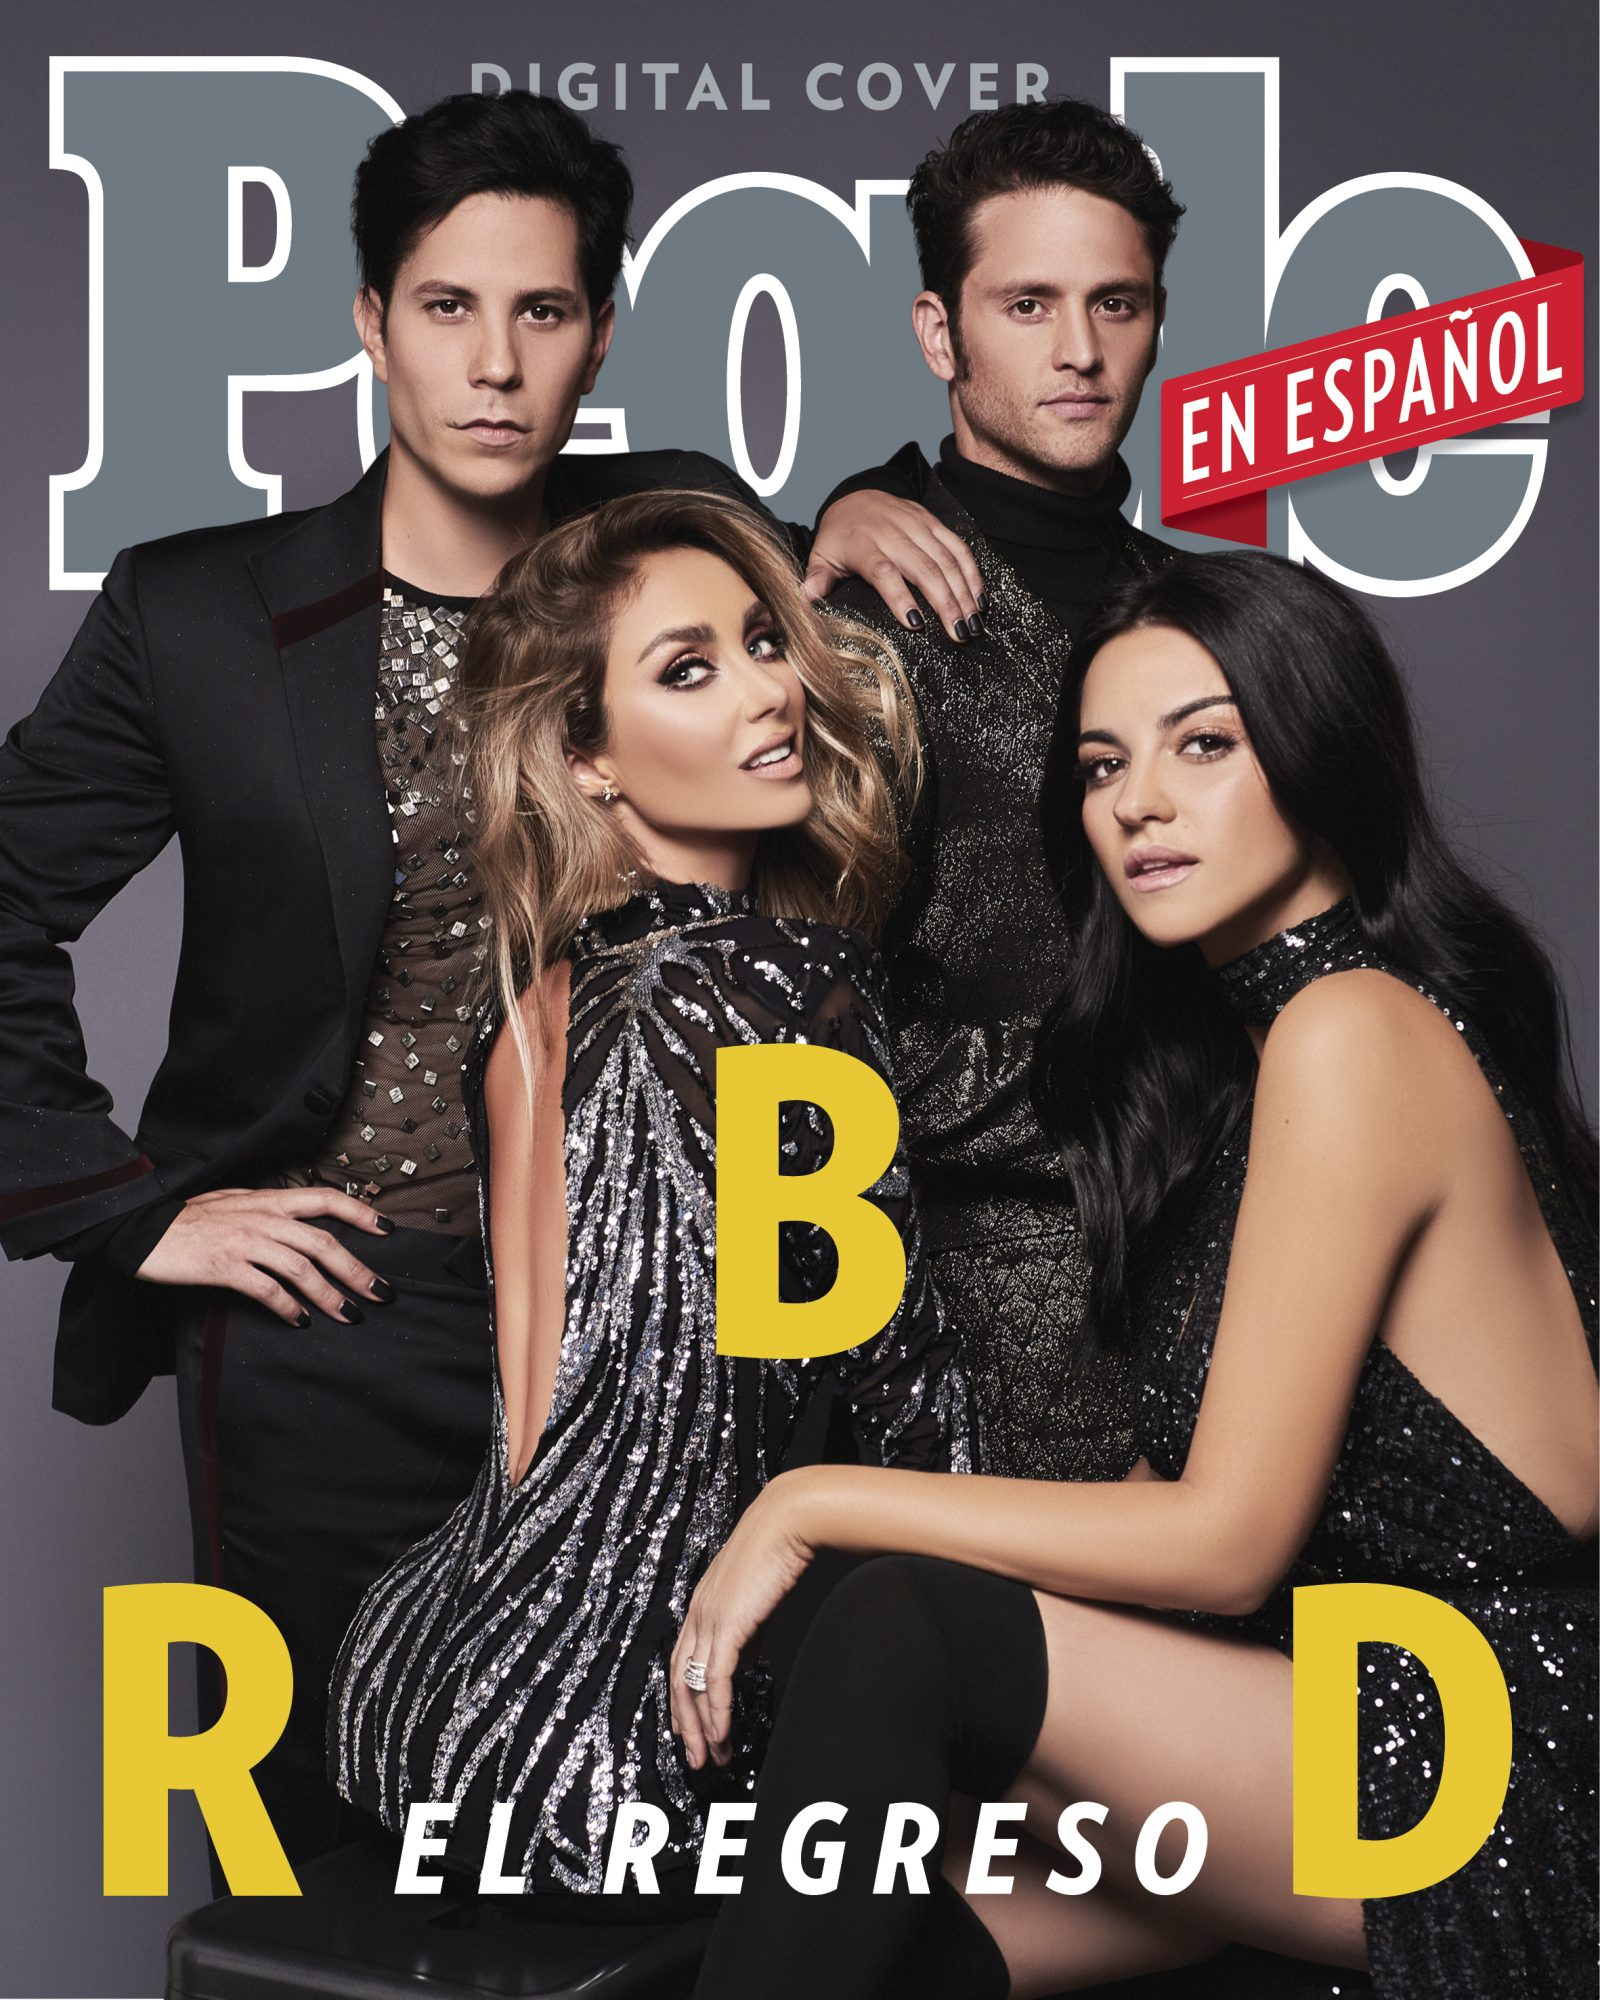 RBD - Anahi, Christian Chavez, Christopher von Uckermann, Maite Perroni - DIGITAL COVER - DO NOT REUSE